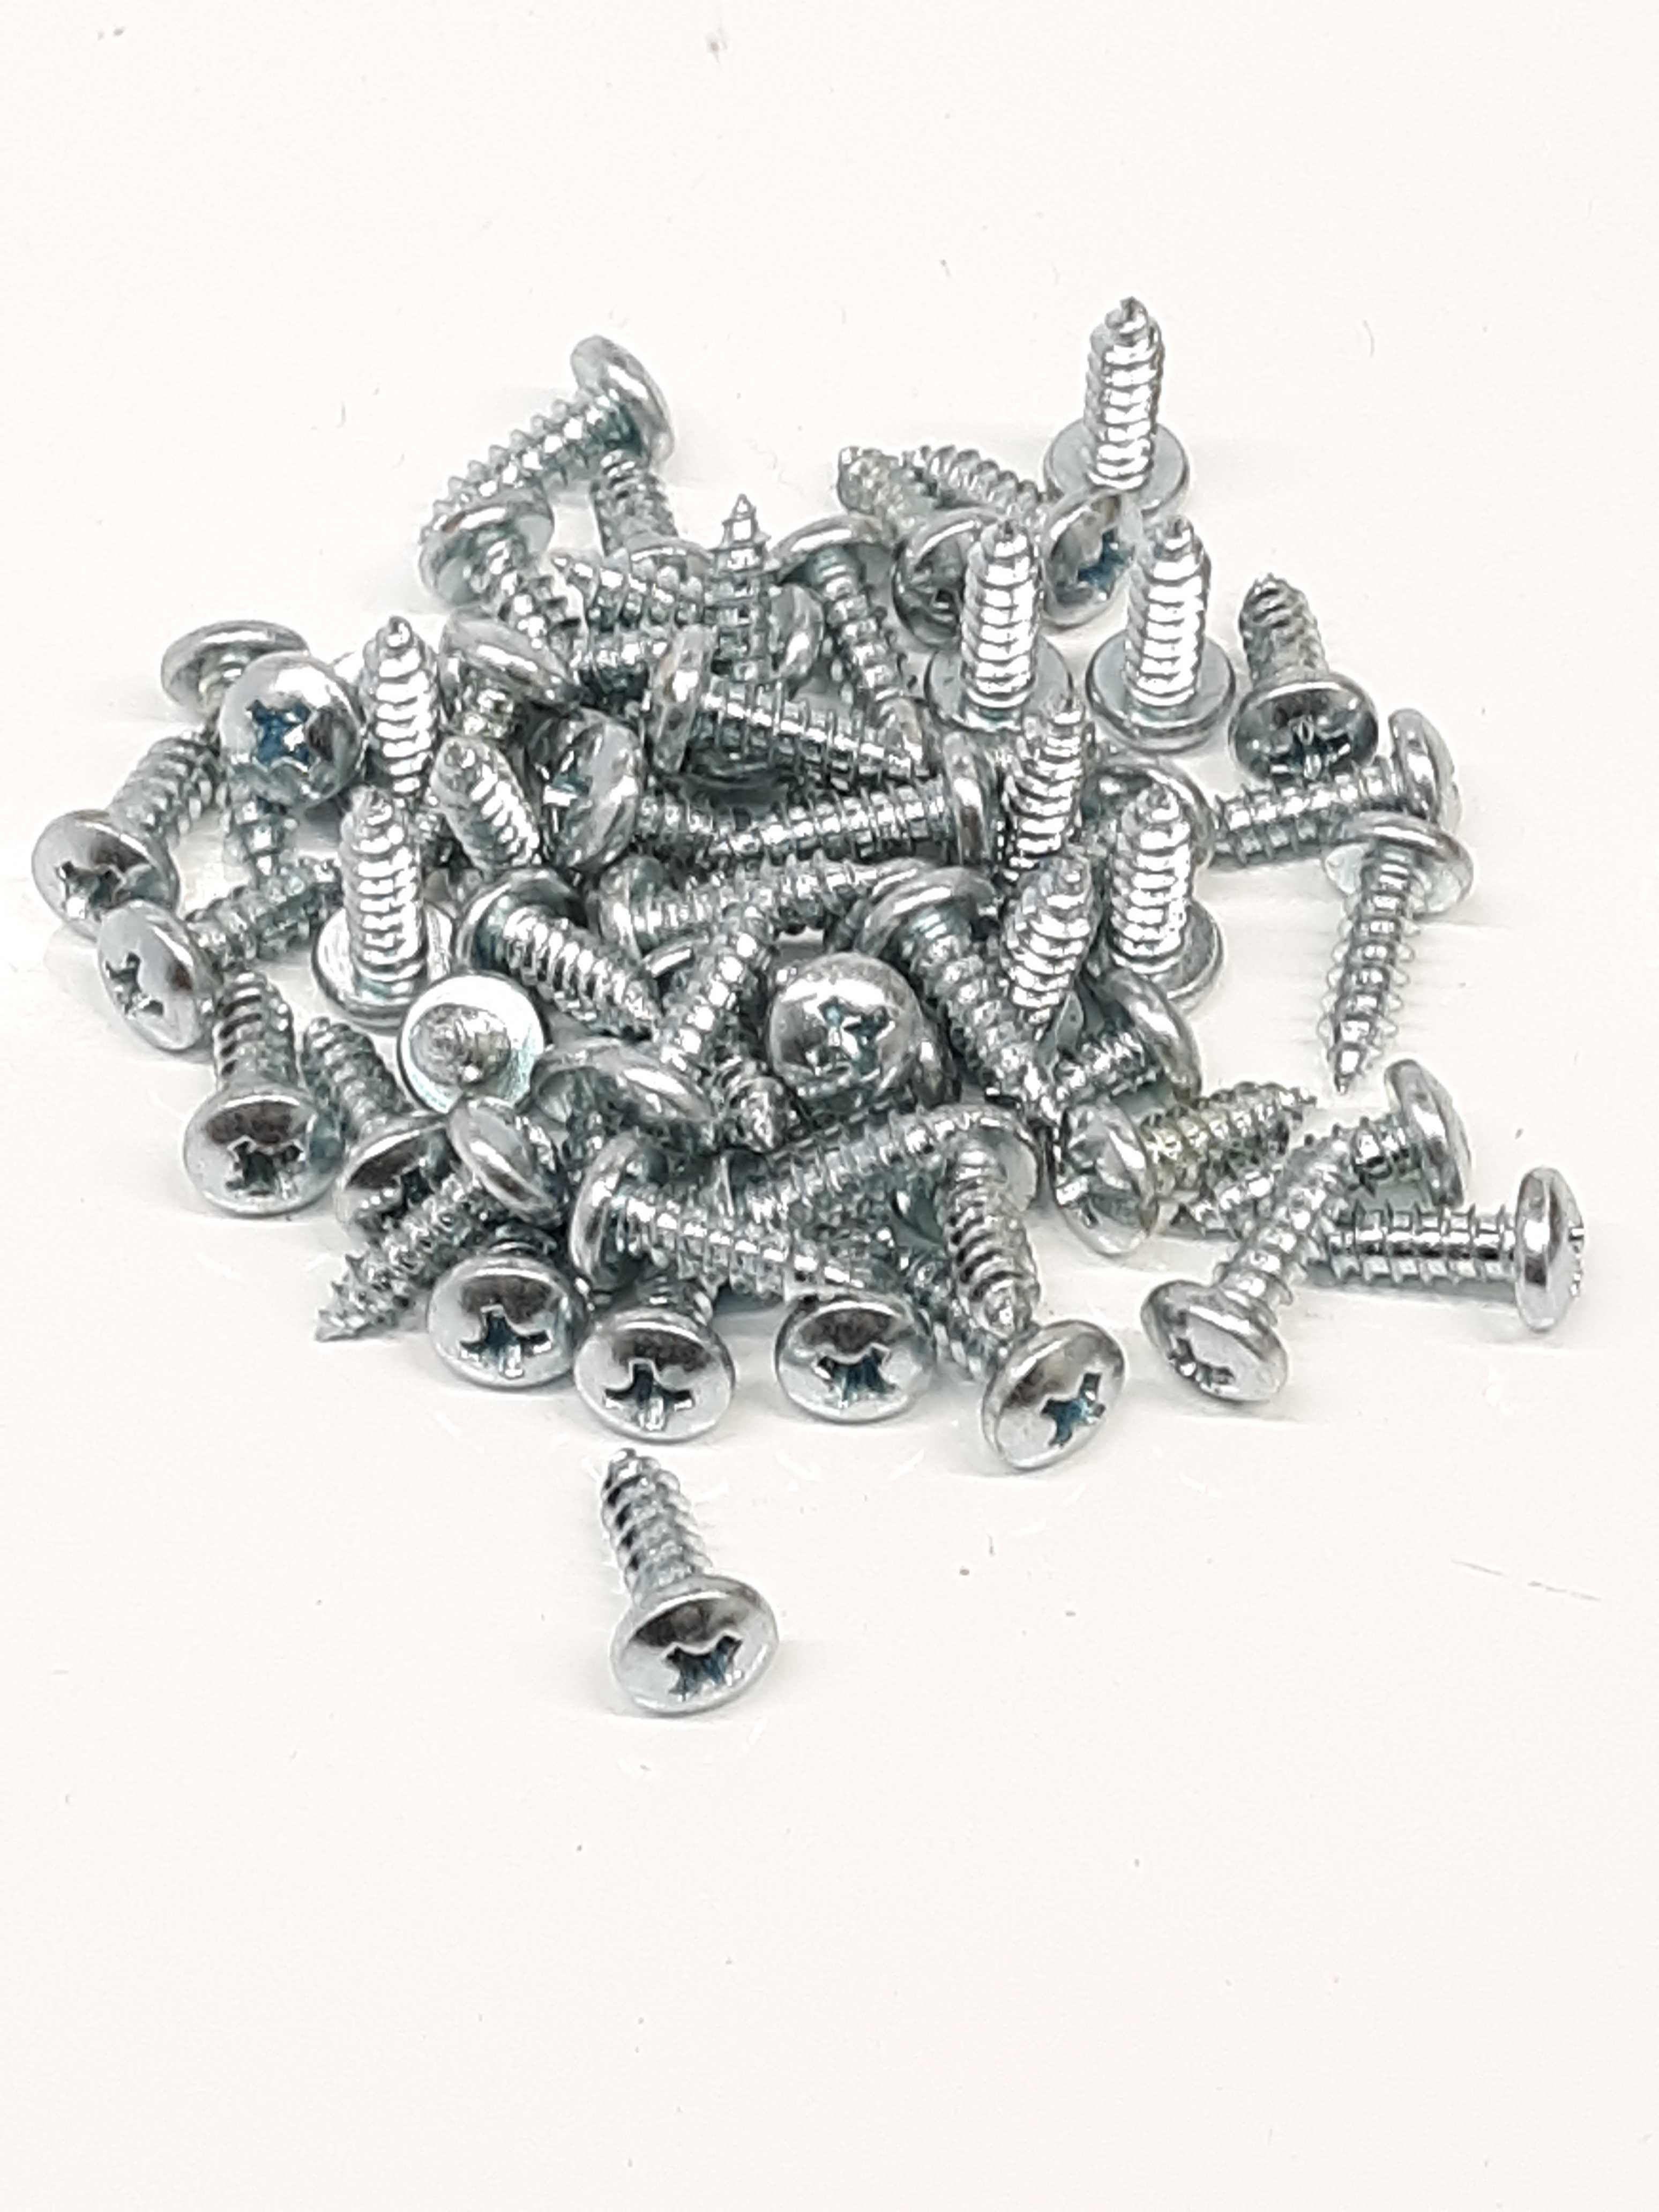 Pan PHP812 Phillips Tapping Screw 8x1/2 Lot of 95